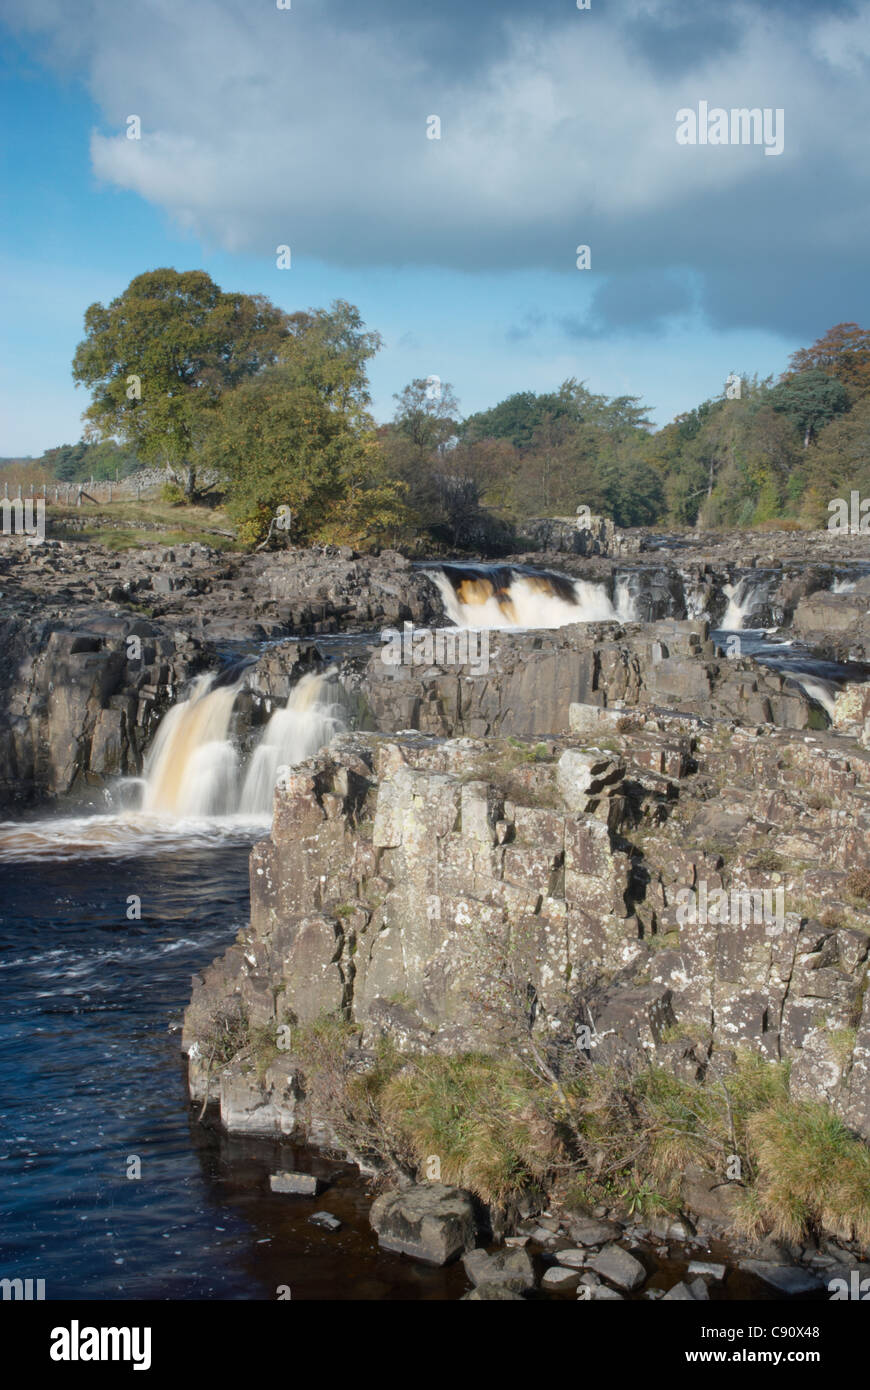 Low Force waterfalls are a series of small cascades on the River Tees at Bowlees. Durham, England. - Stock Image